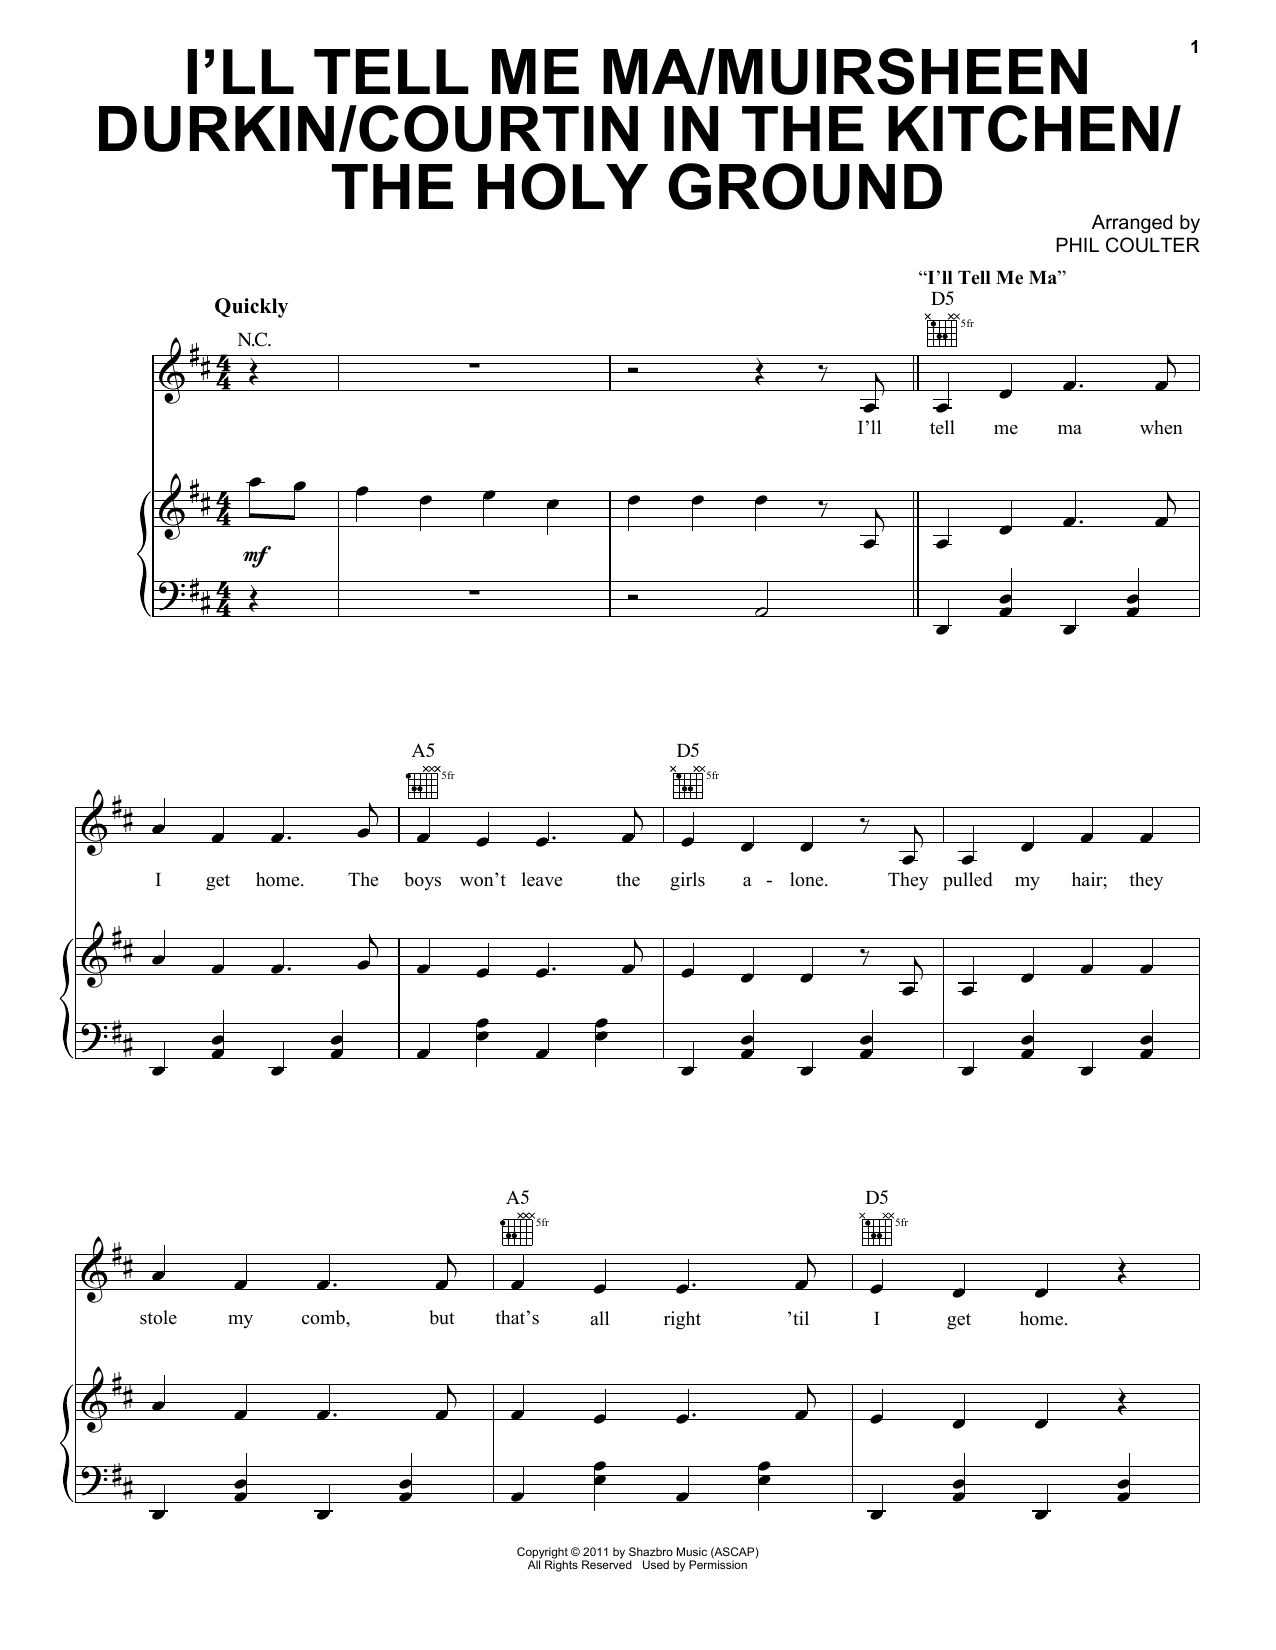 I'll Tell Me Ma/Muirsheen Durkin/Courtin In The Kitchen/The Holy Ground Sheet Music